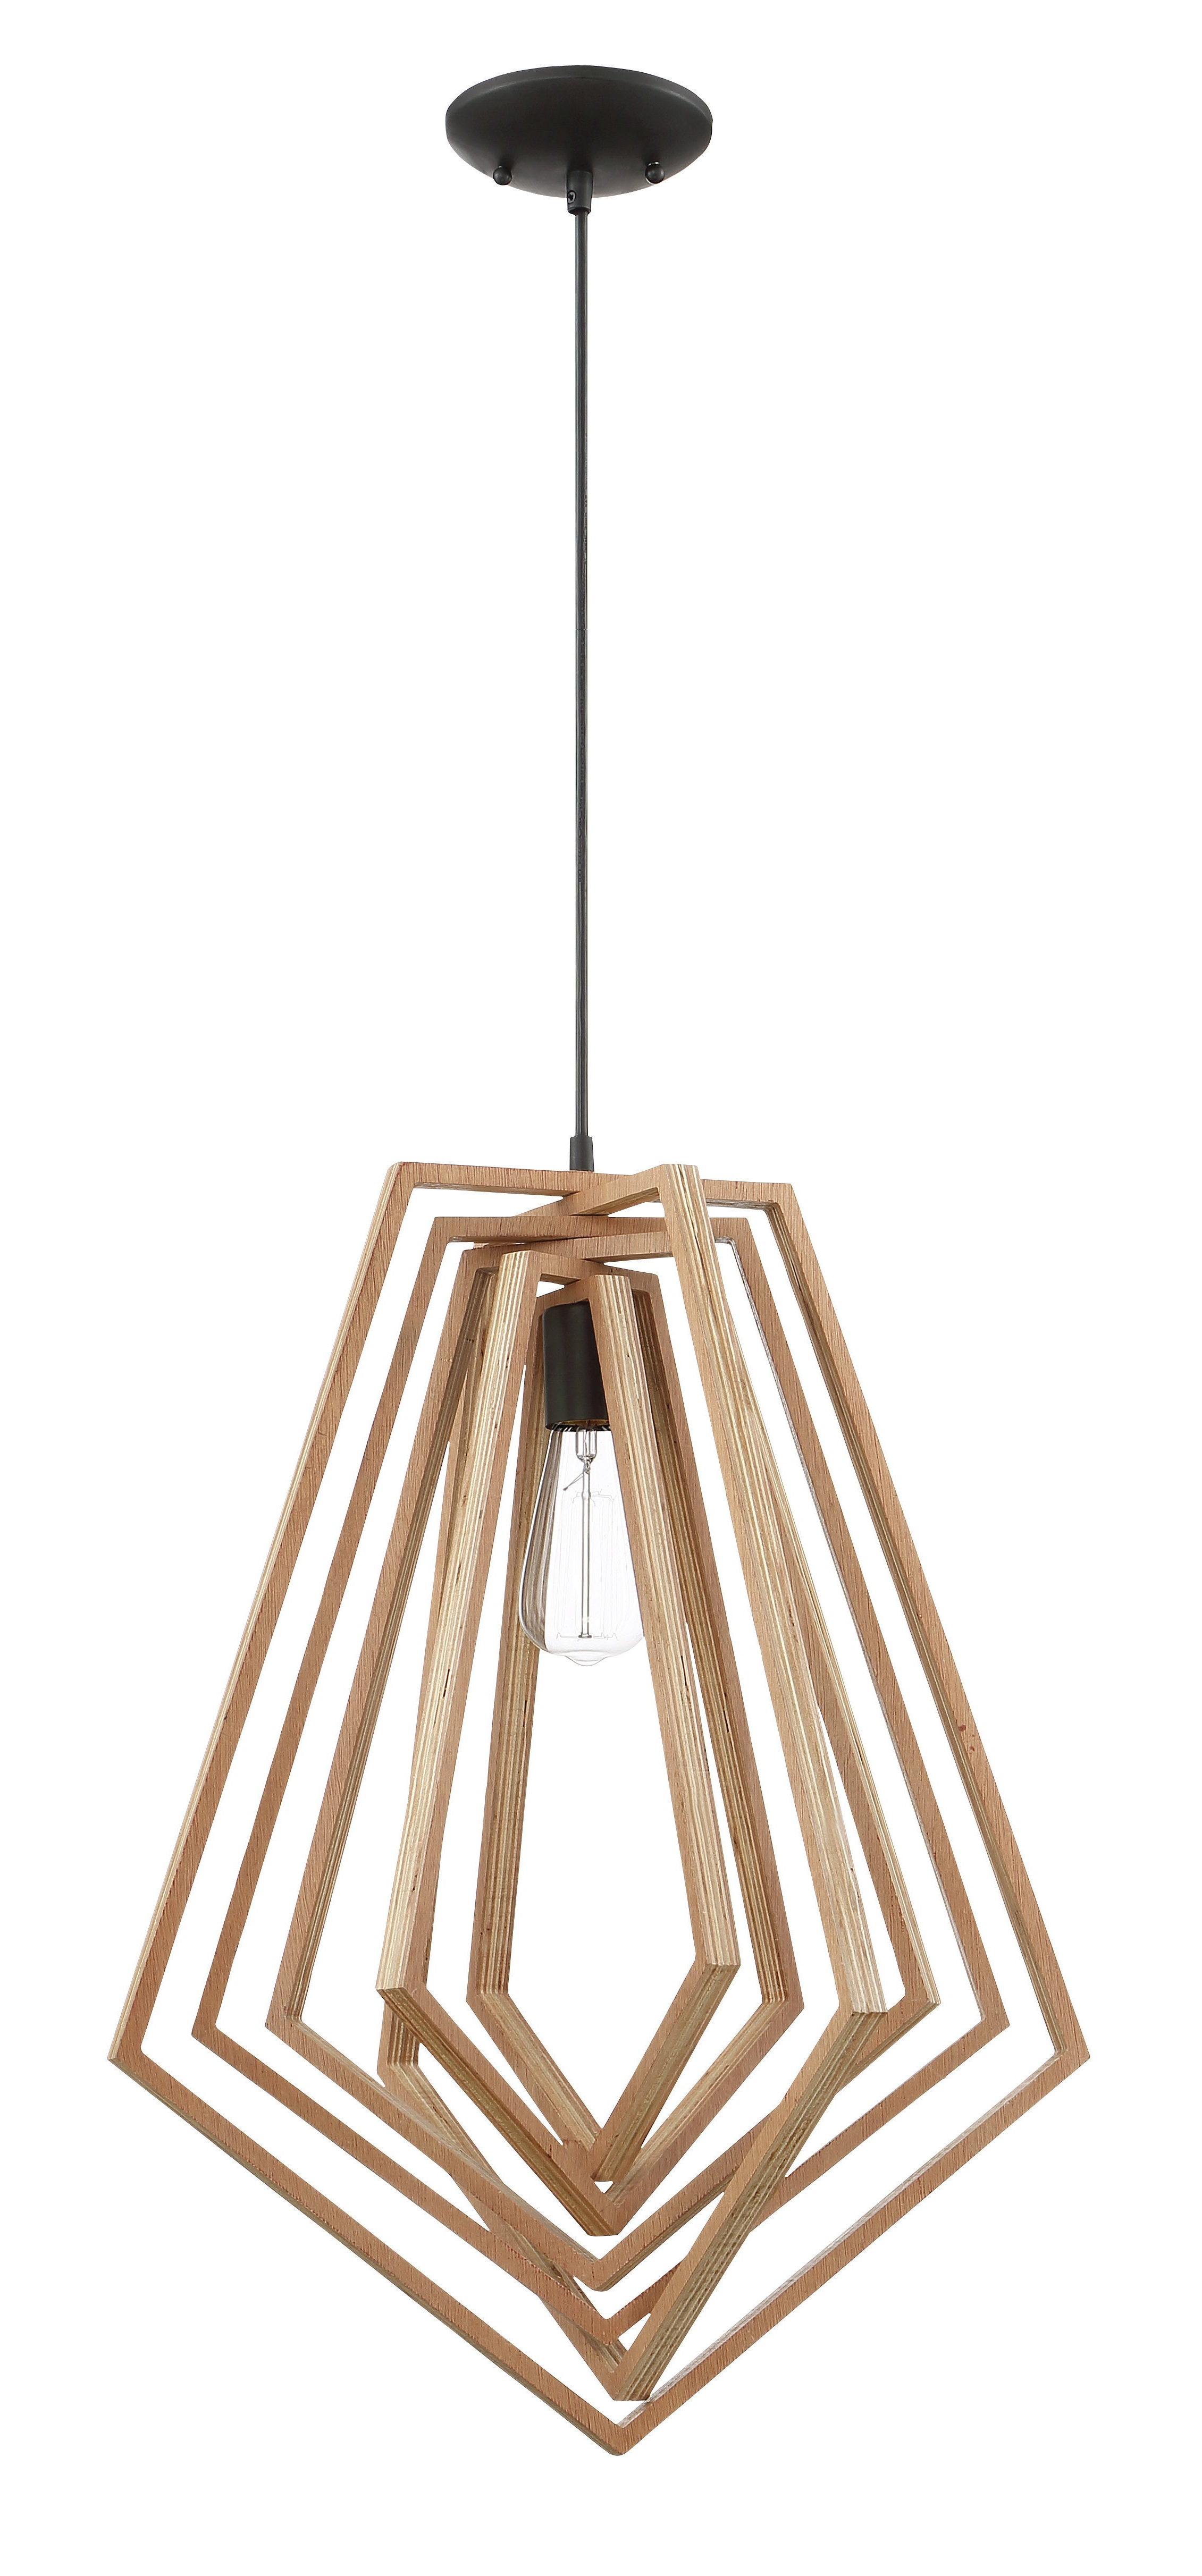 Best And Newest Union Rustic Shelbi 1 Light Geometric Pendant Intended For Melora 1 Light Single Geometric Pendants (Gallery 10 of 20)